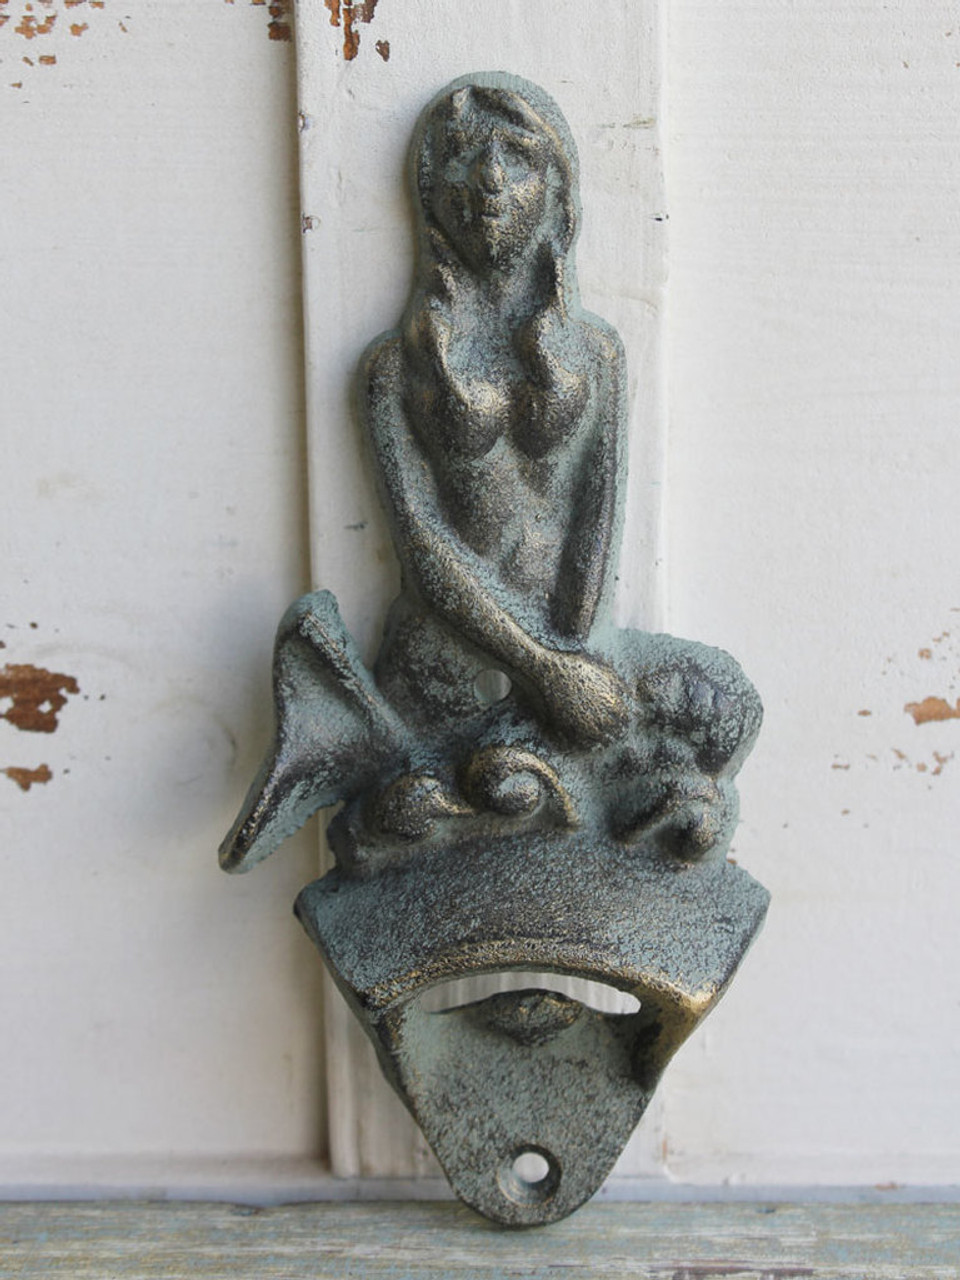 Wall Mounted Cast Iron Bottle Opener - Mermaid - Antique Green - 6.25""